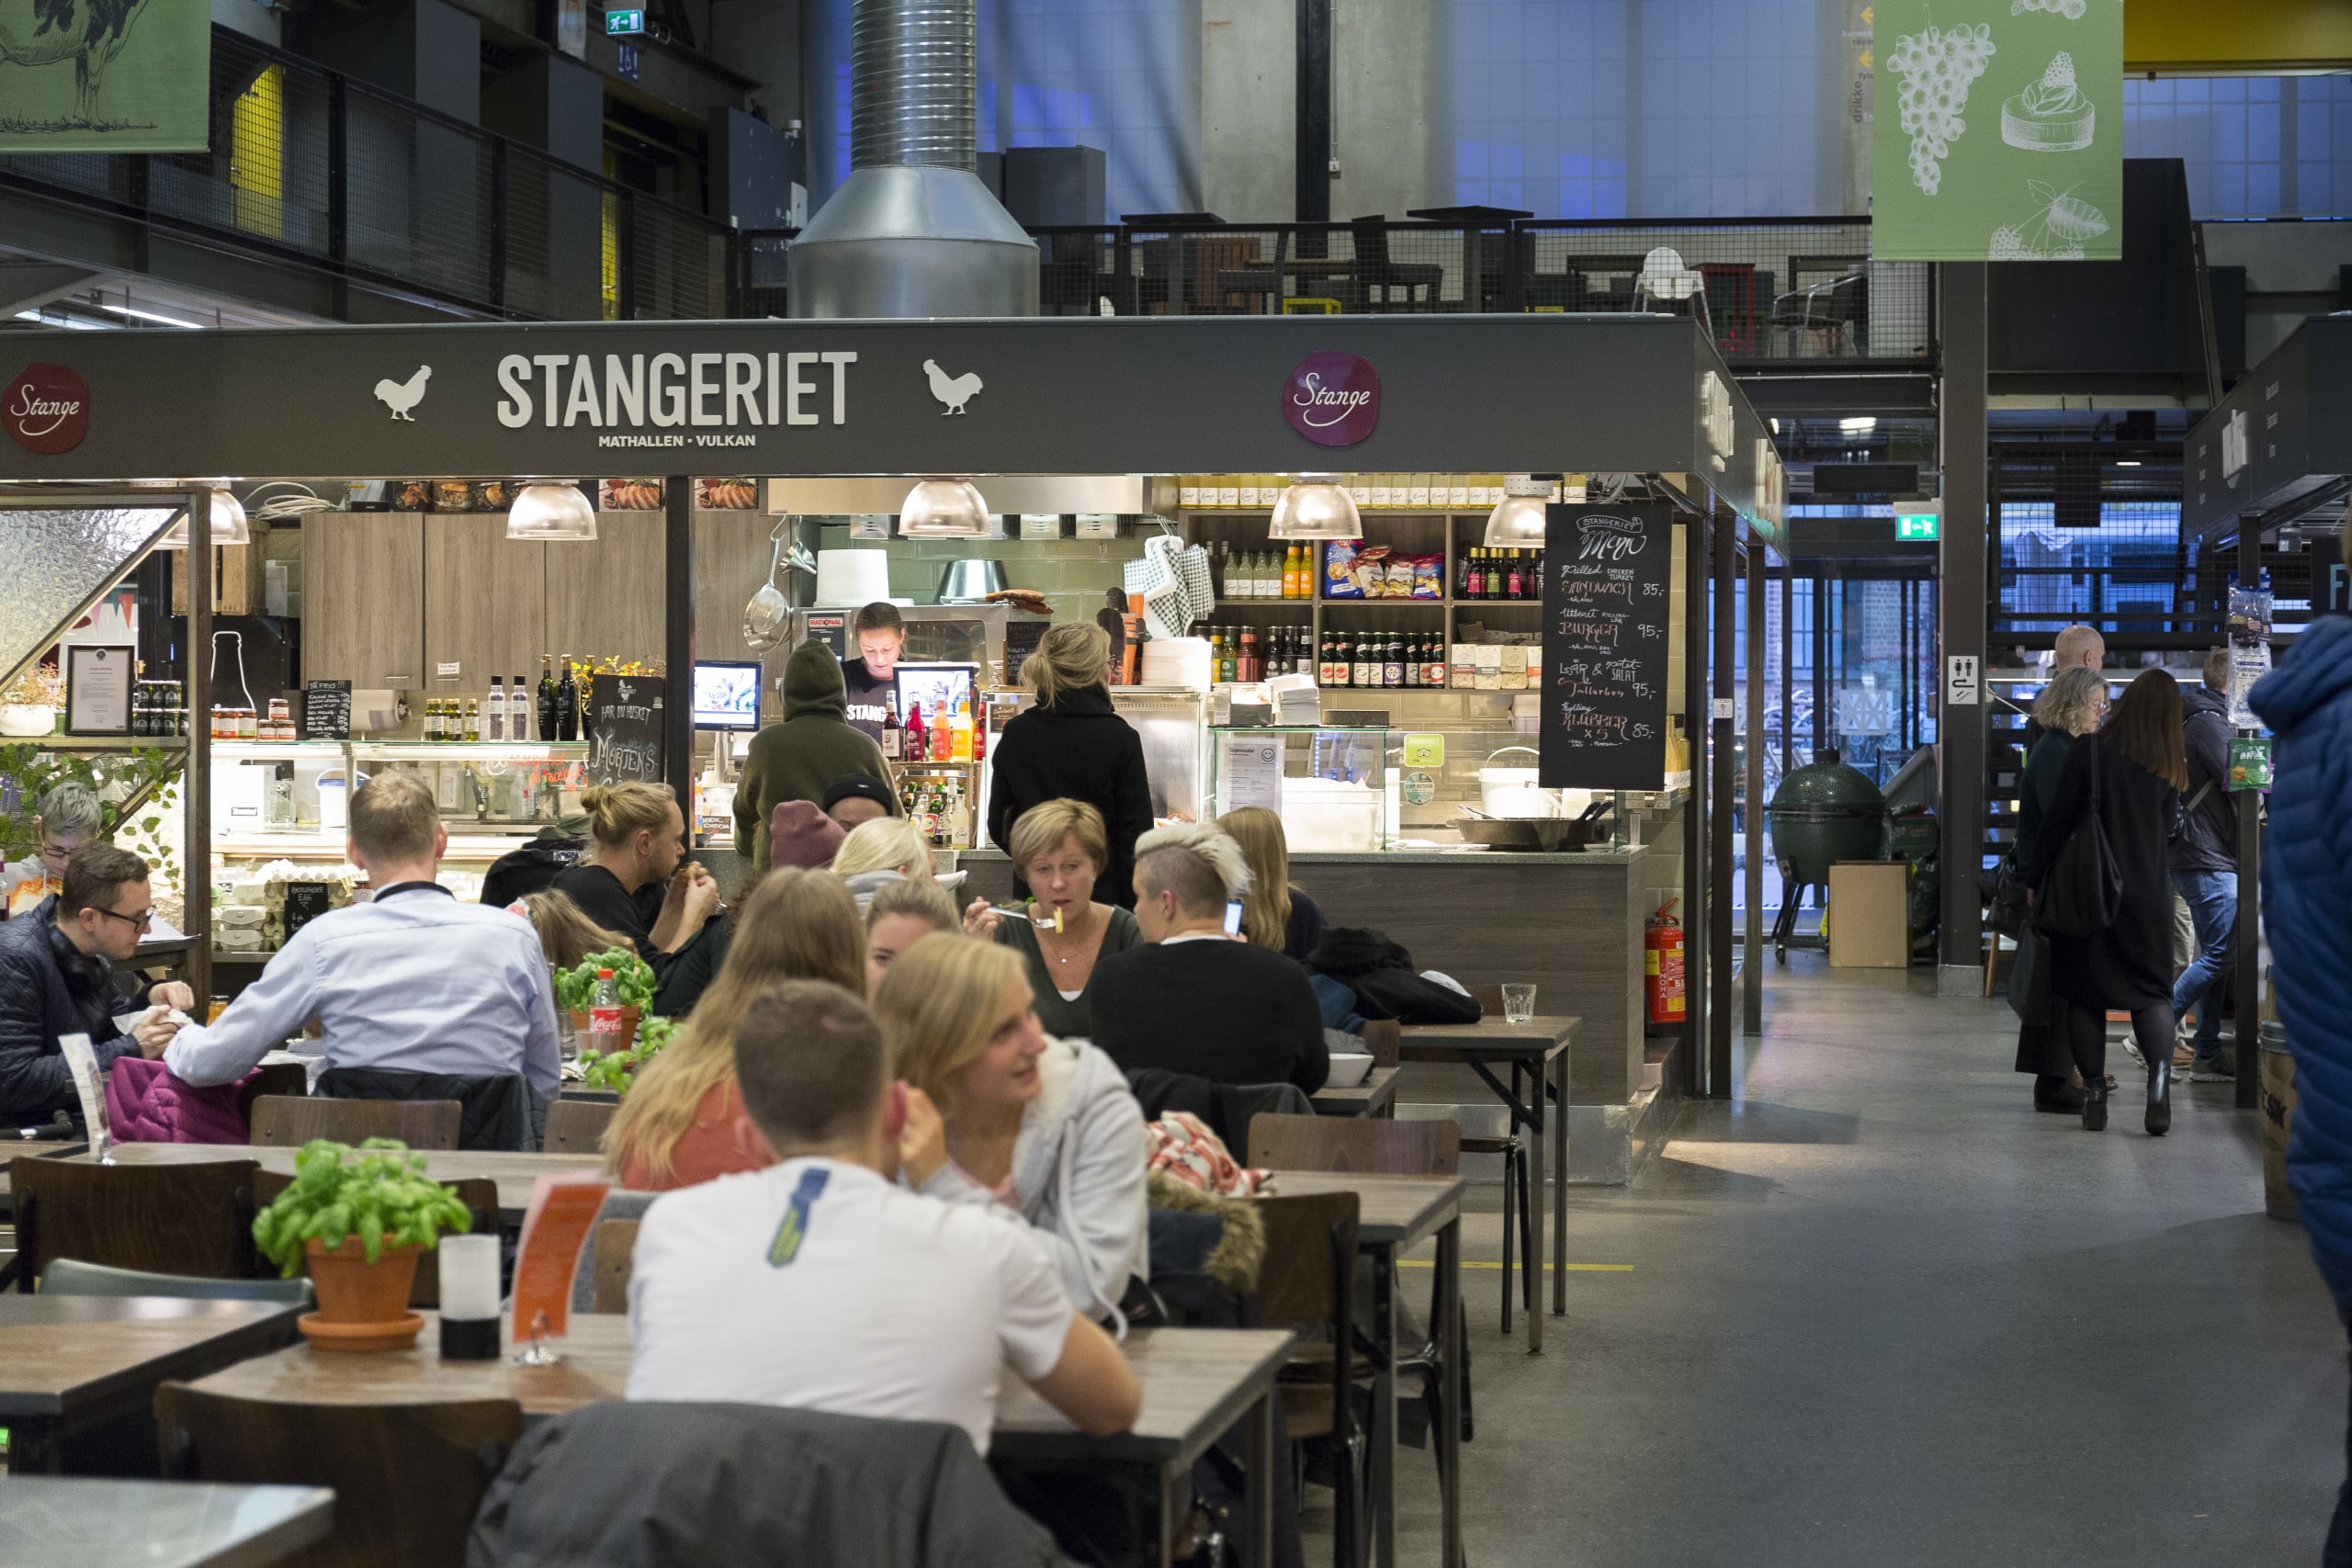 Oslo Food Hall